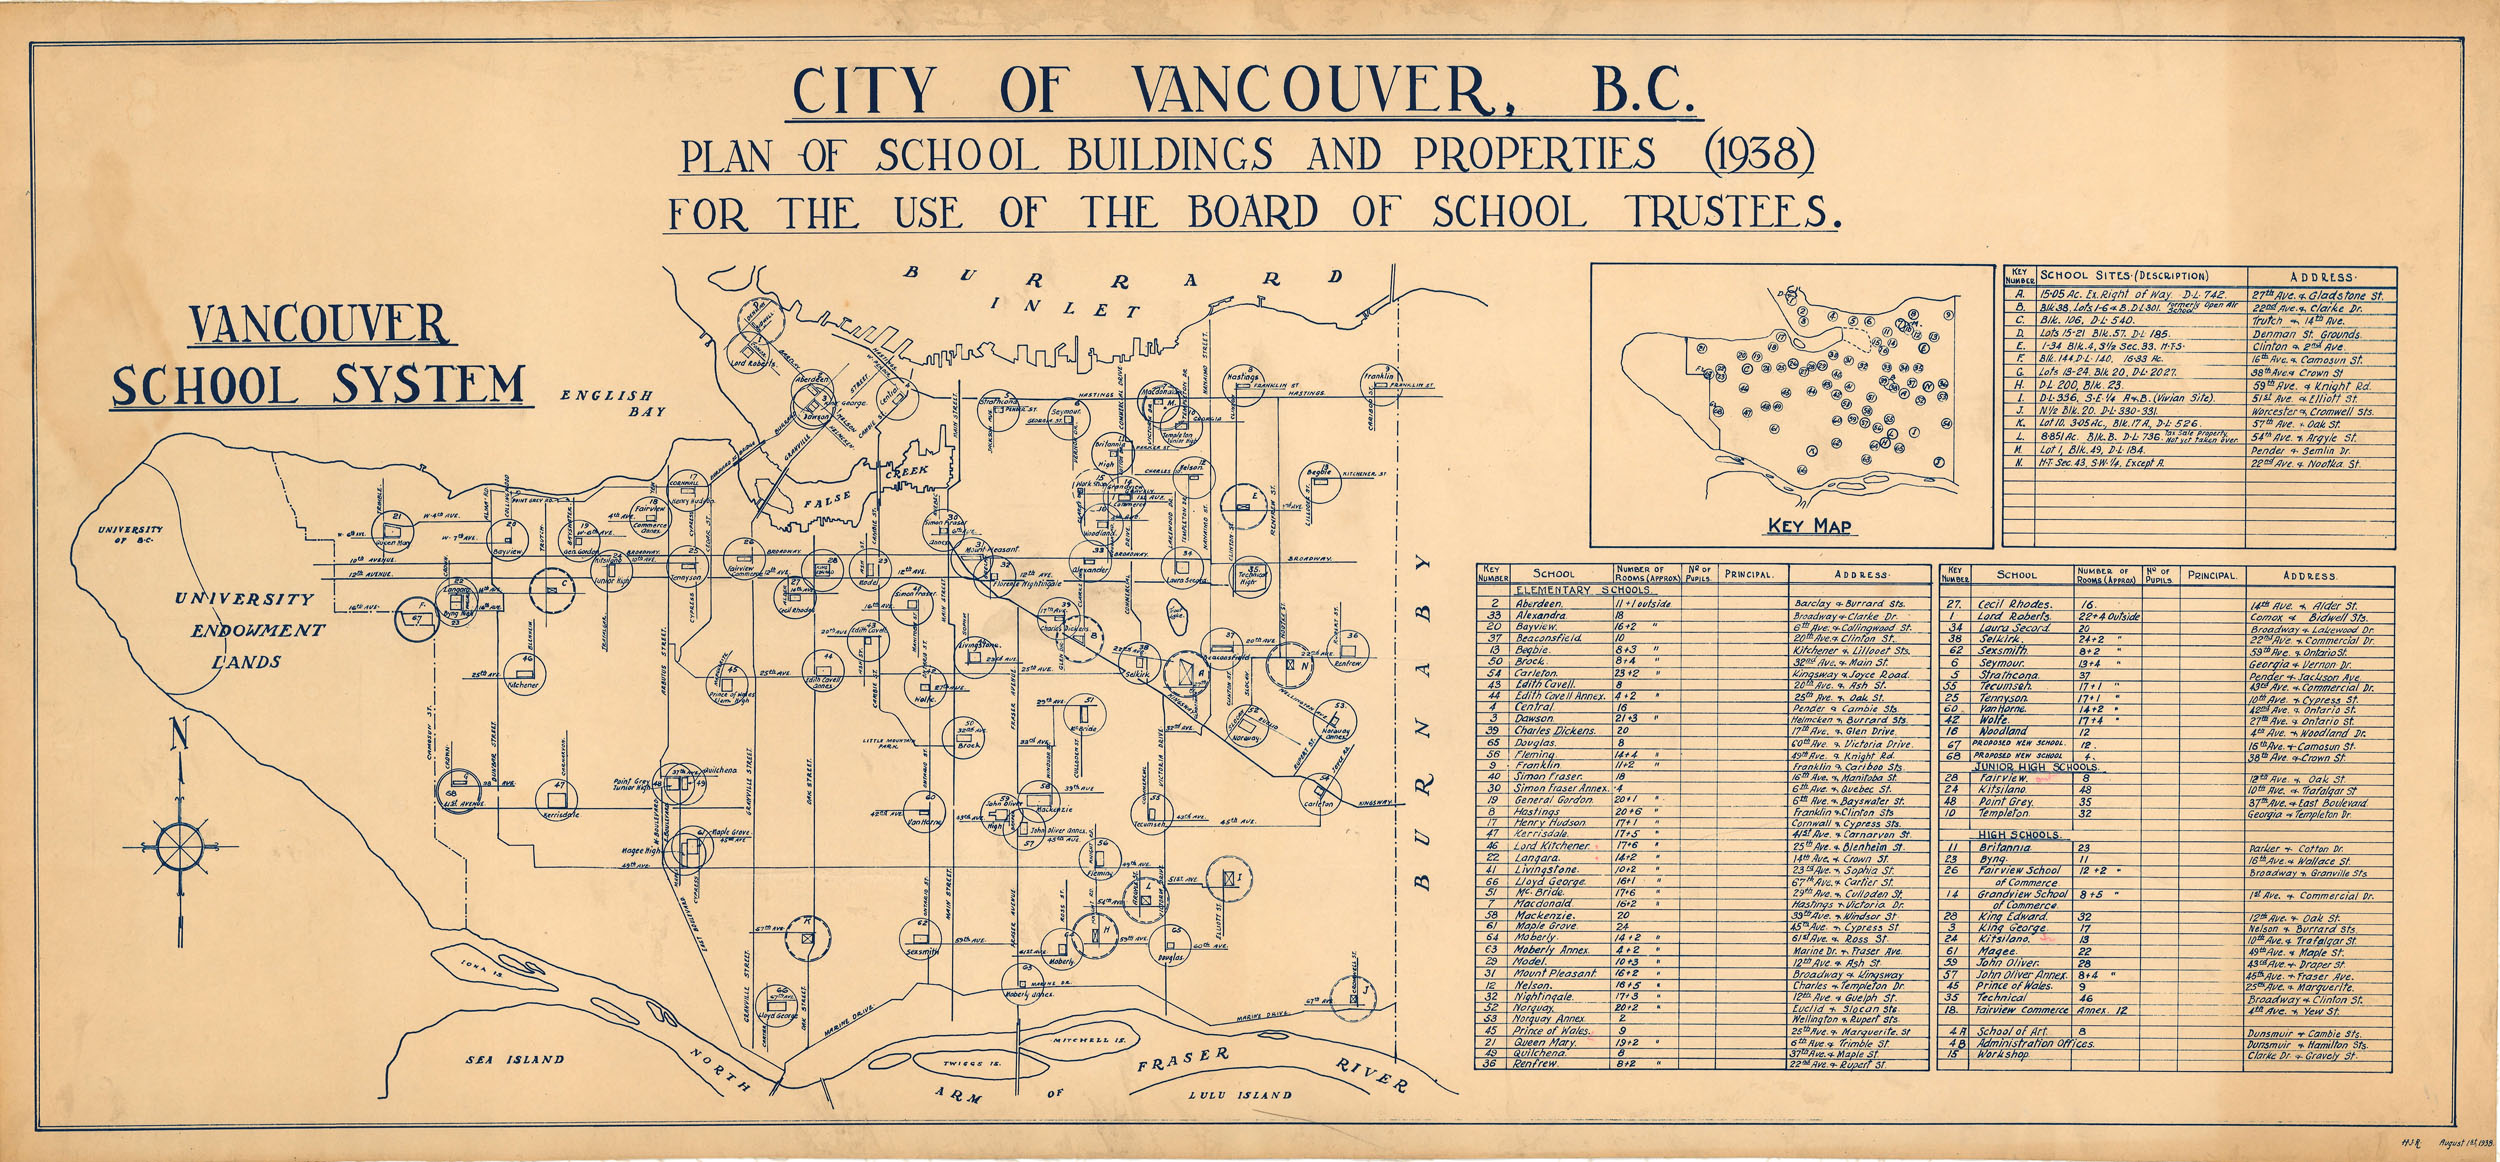 overview of map showing schools and information